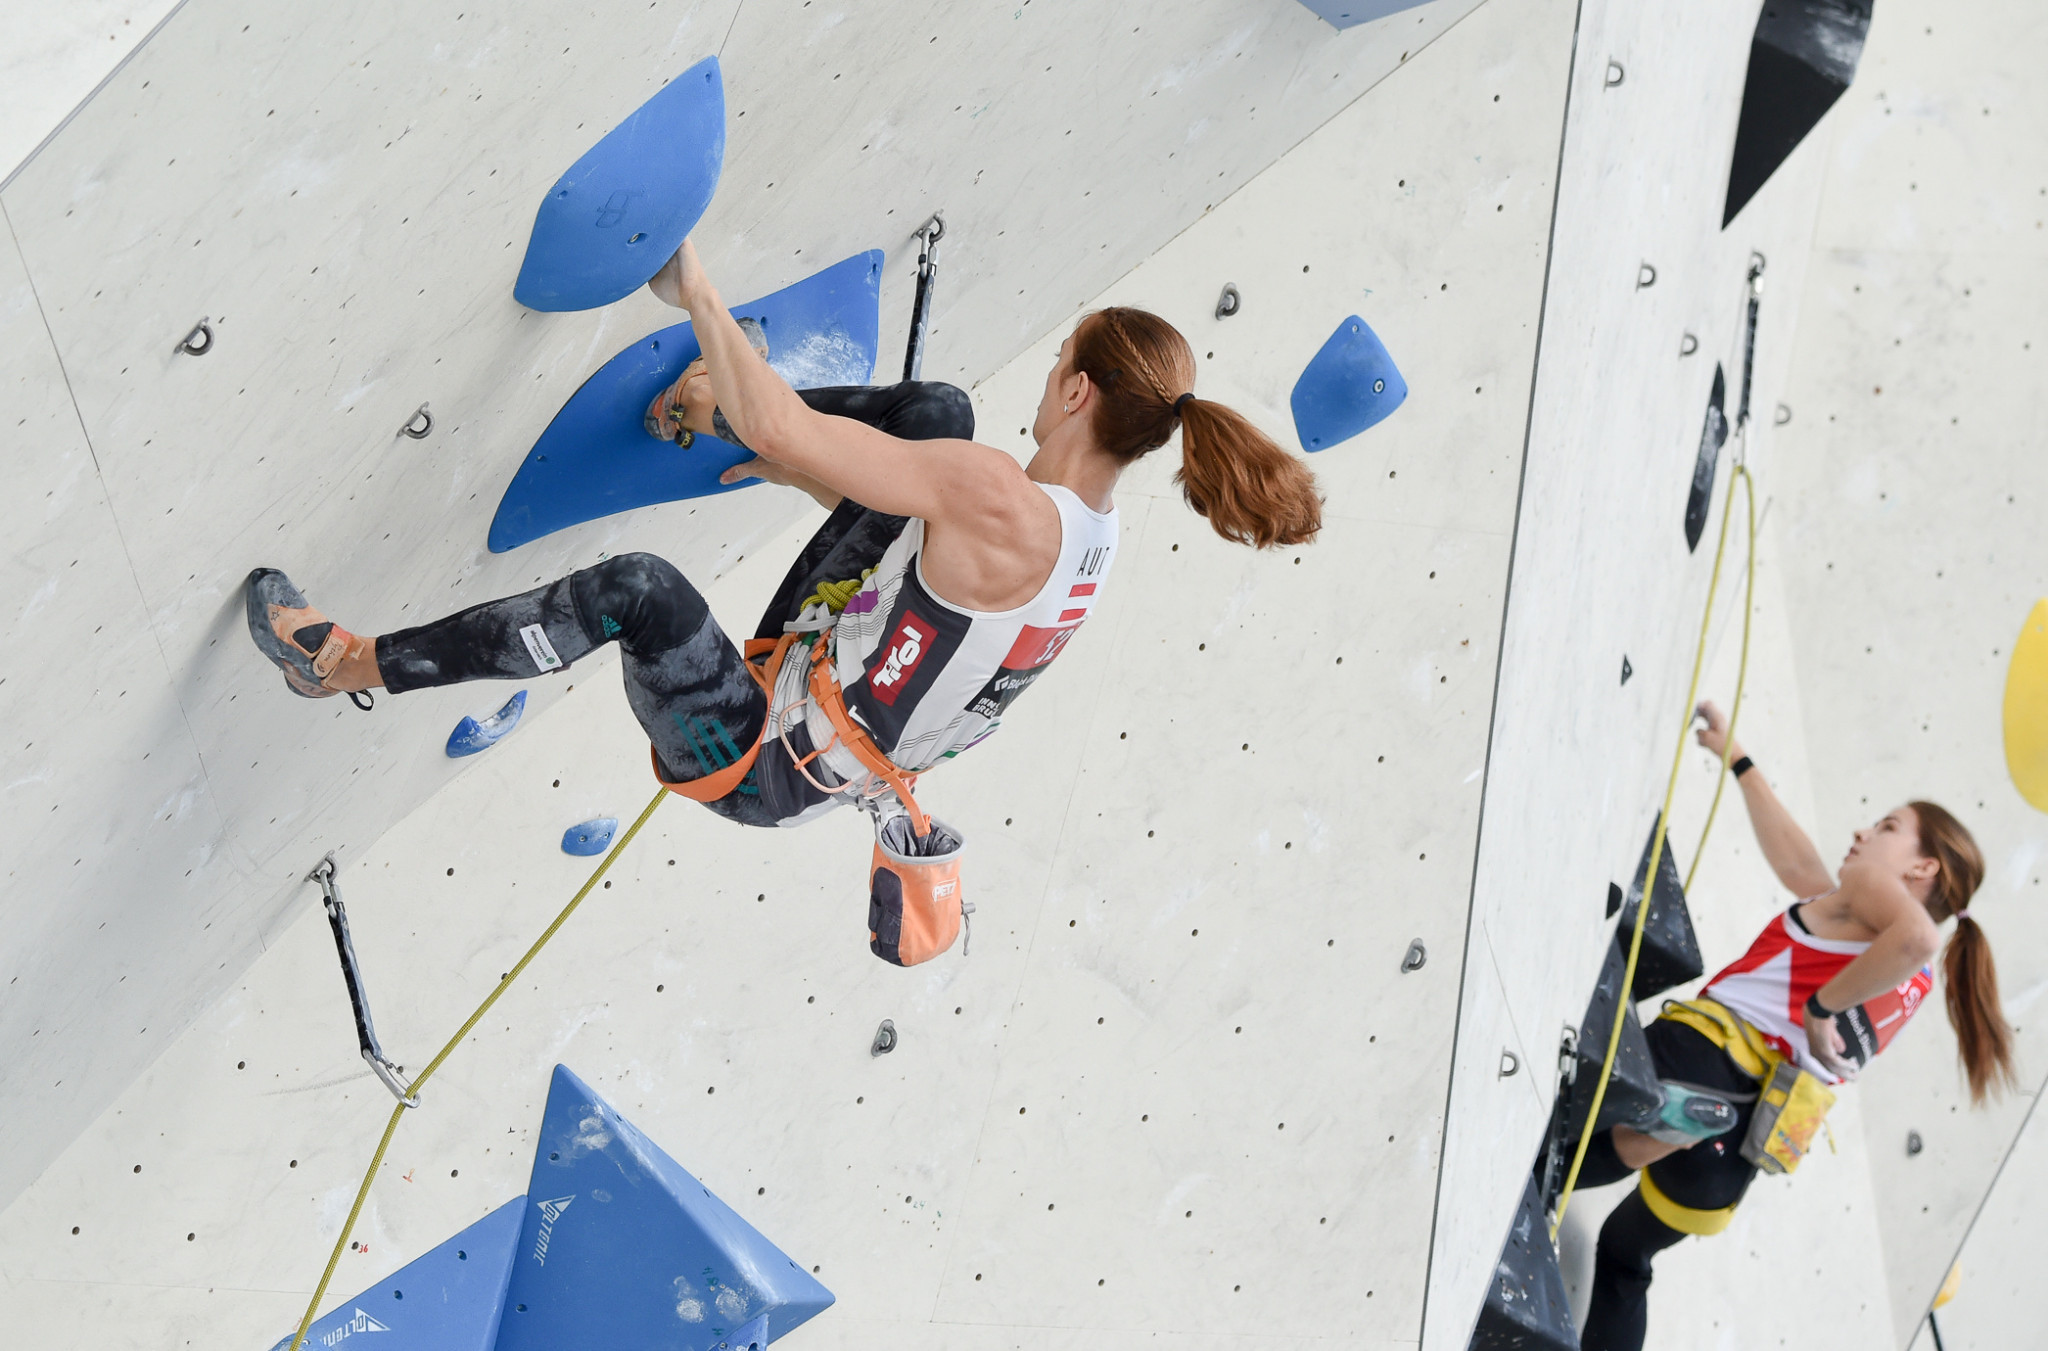 The IFSC European Championships in Moscow have been moved again to October ©Getty Images